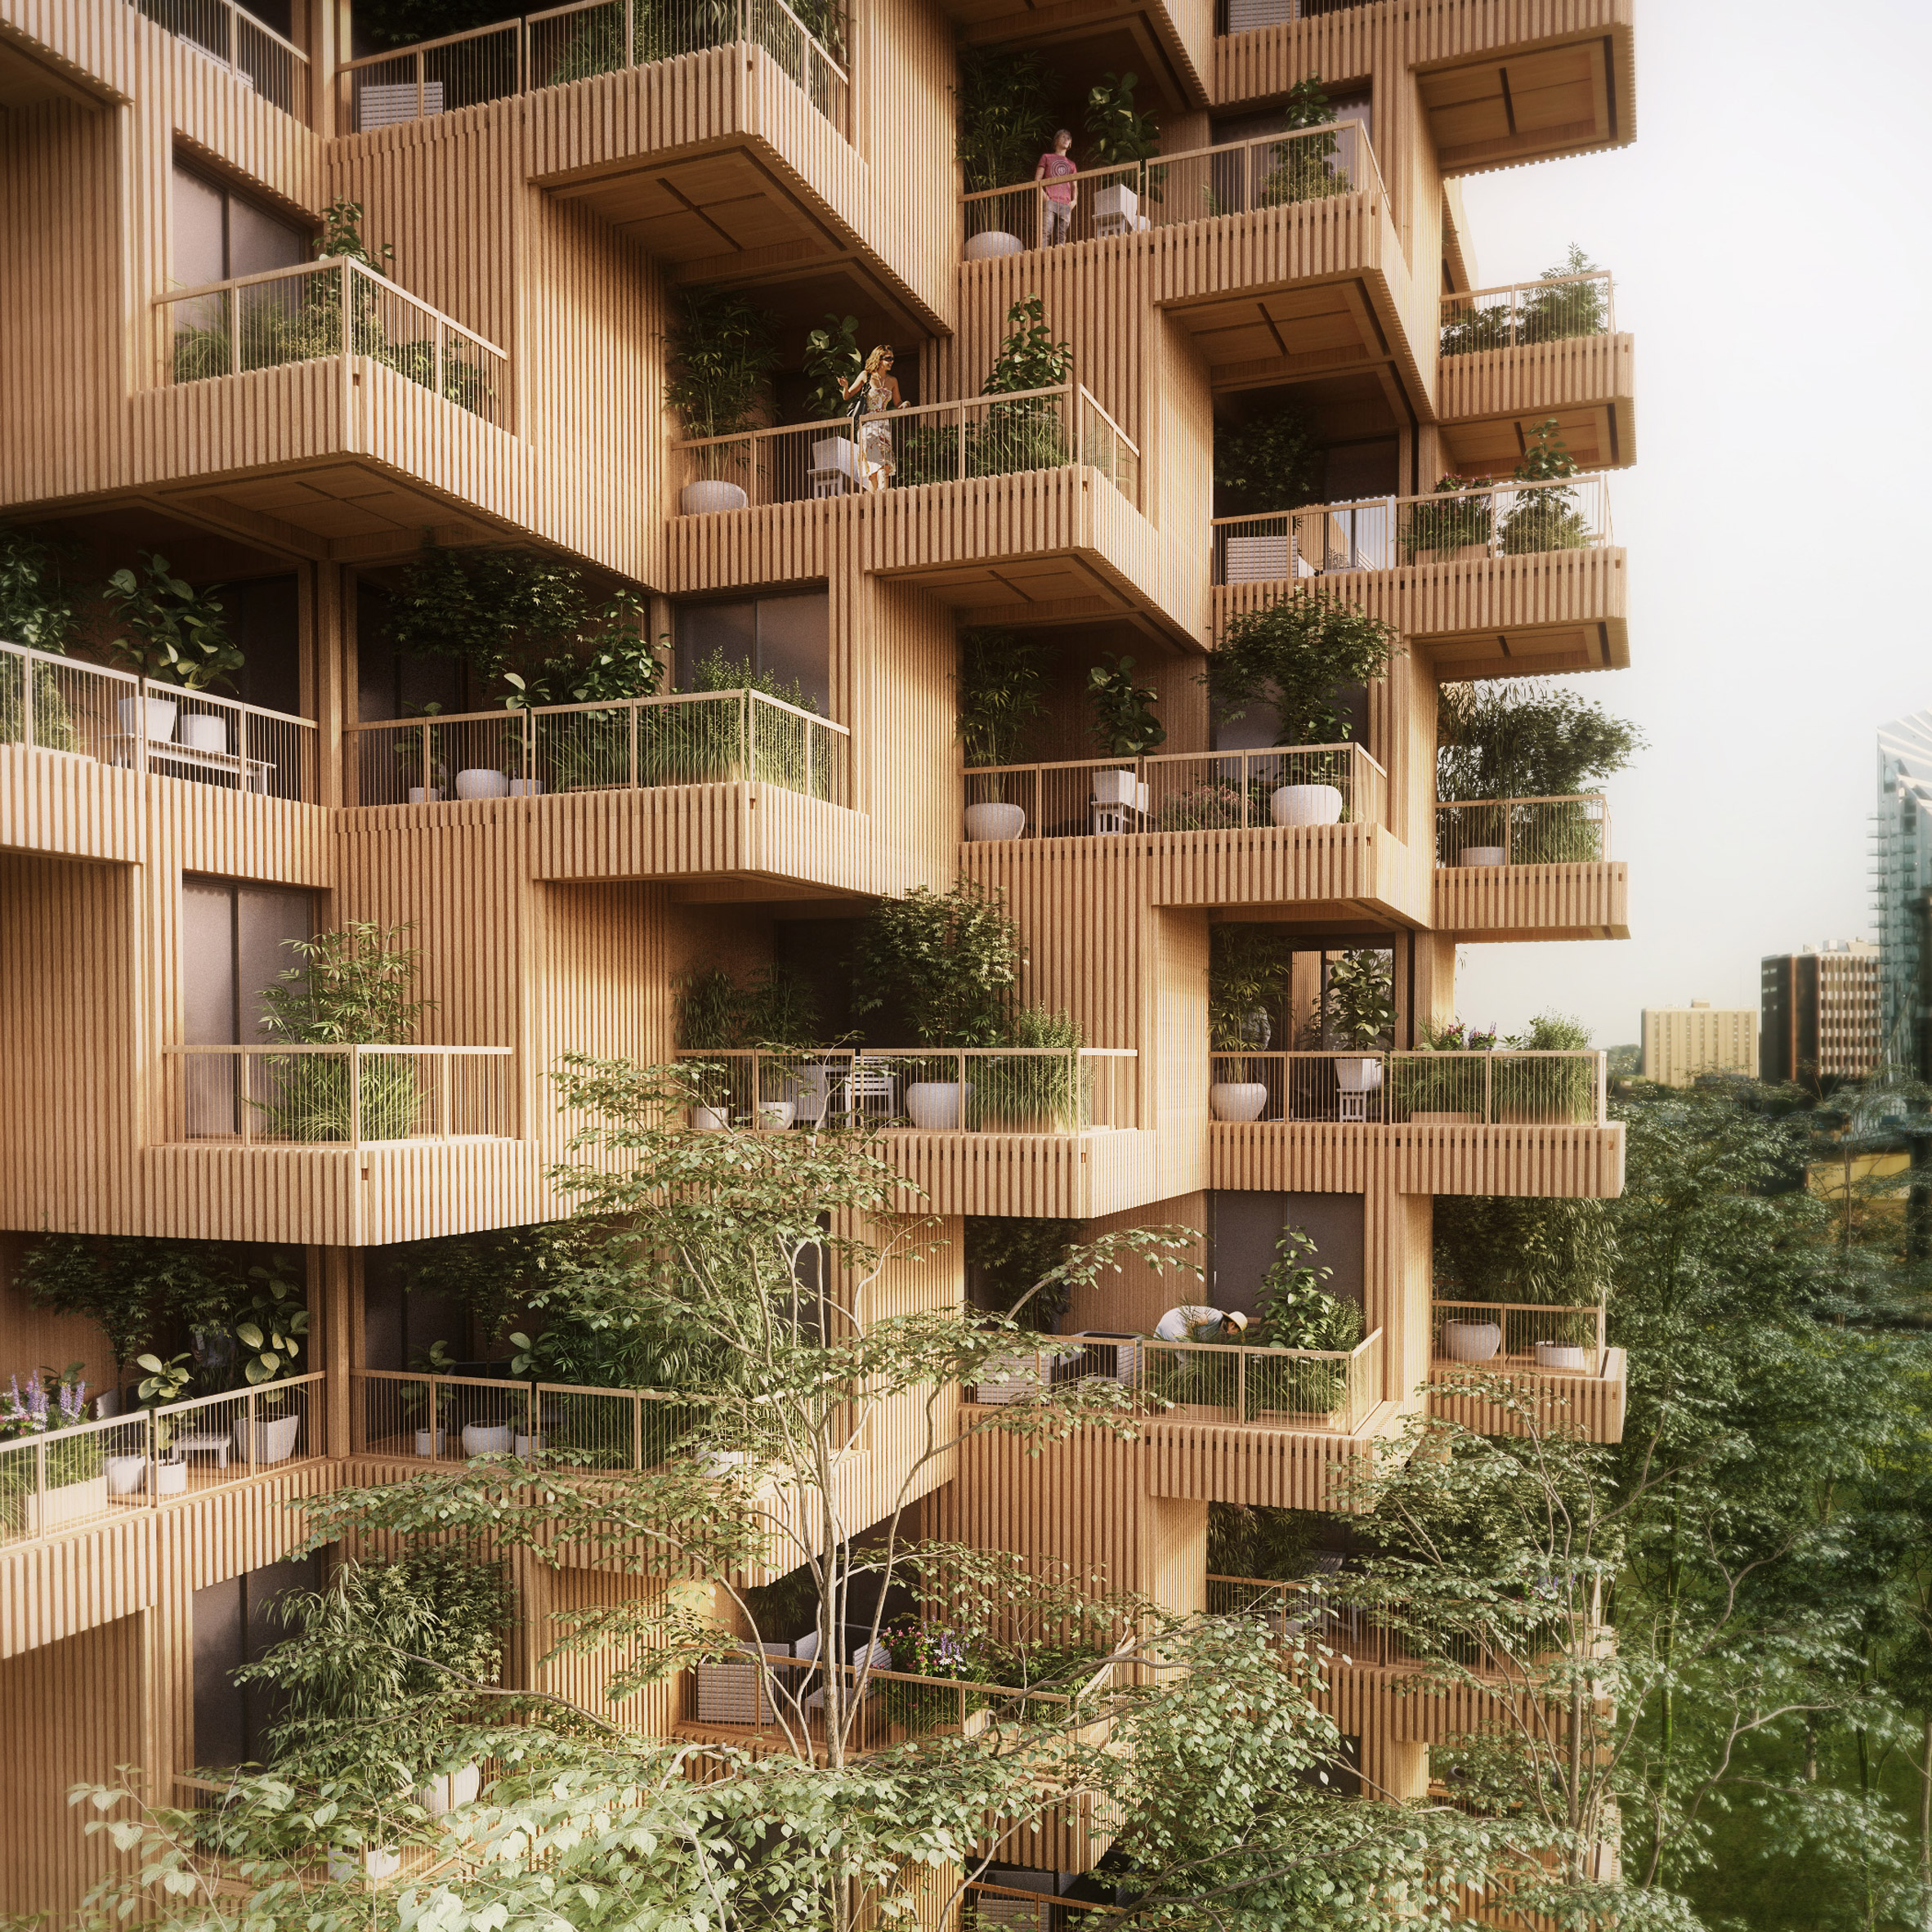 Architectural Design Of Residential Building Penda Proposes Toronto Tree Tower Built From Cross Laminated